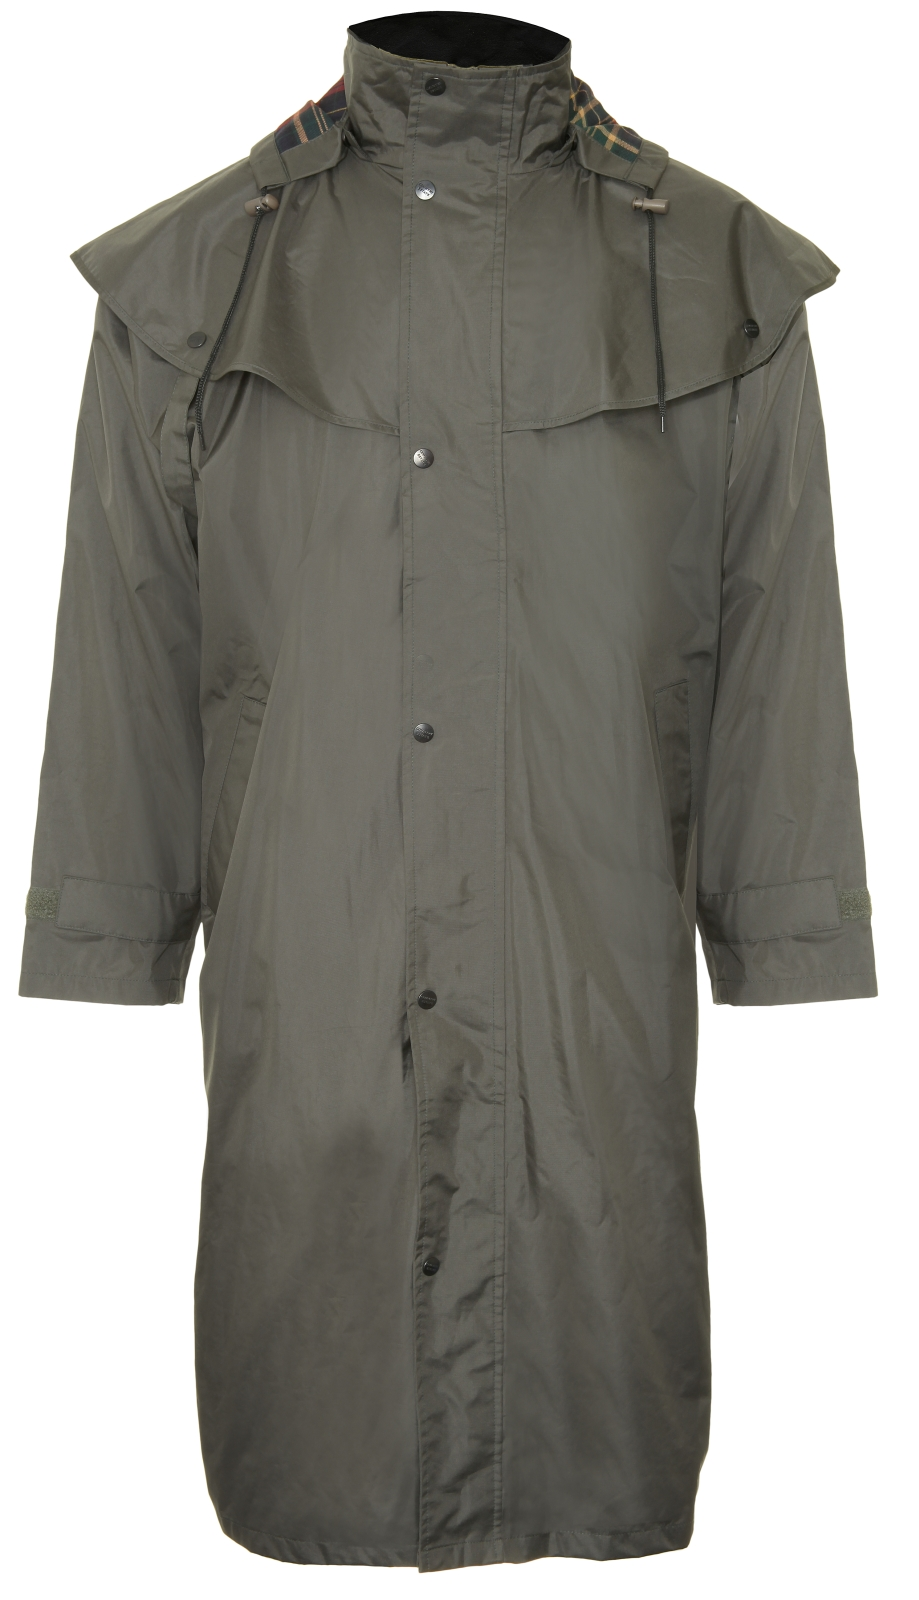 Raincoats for Men Keep dry even in the stormiest of weather while looking refined in one of our classic raincoats for men. Perfect for the man who wants to make a strong fashion statement but still wants to stay dry in a storm, our men's raincoats and rain jackets are water resistant and come in a array of handsome silhouettes and styles.